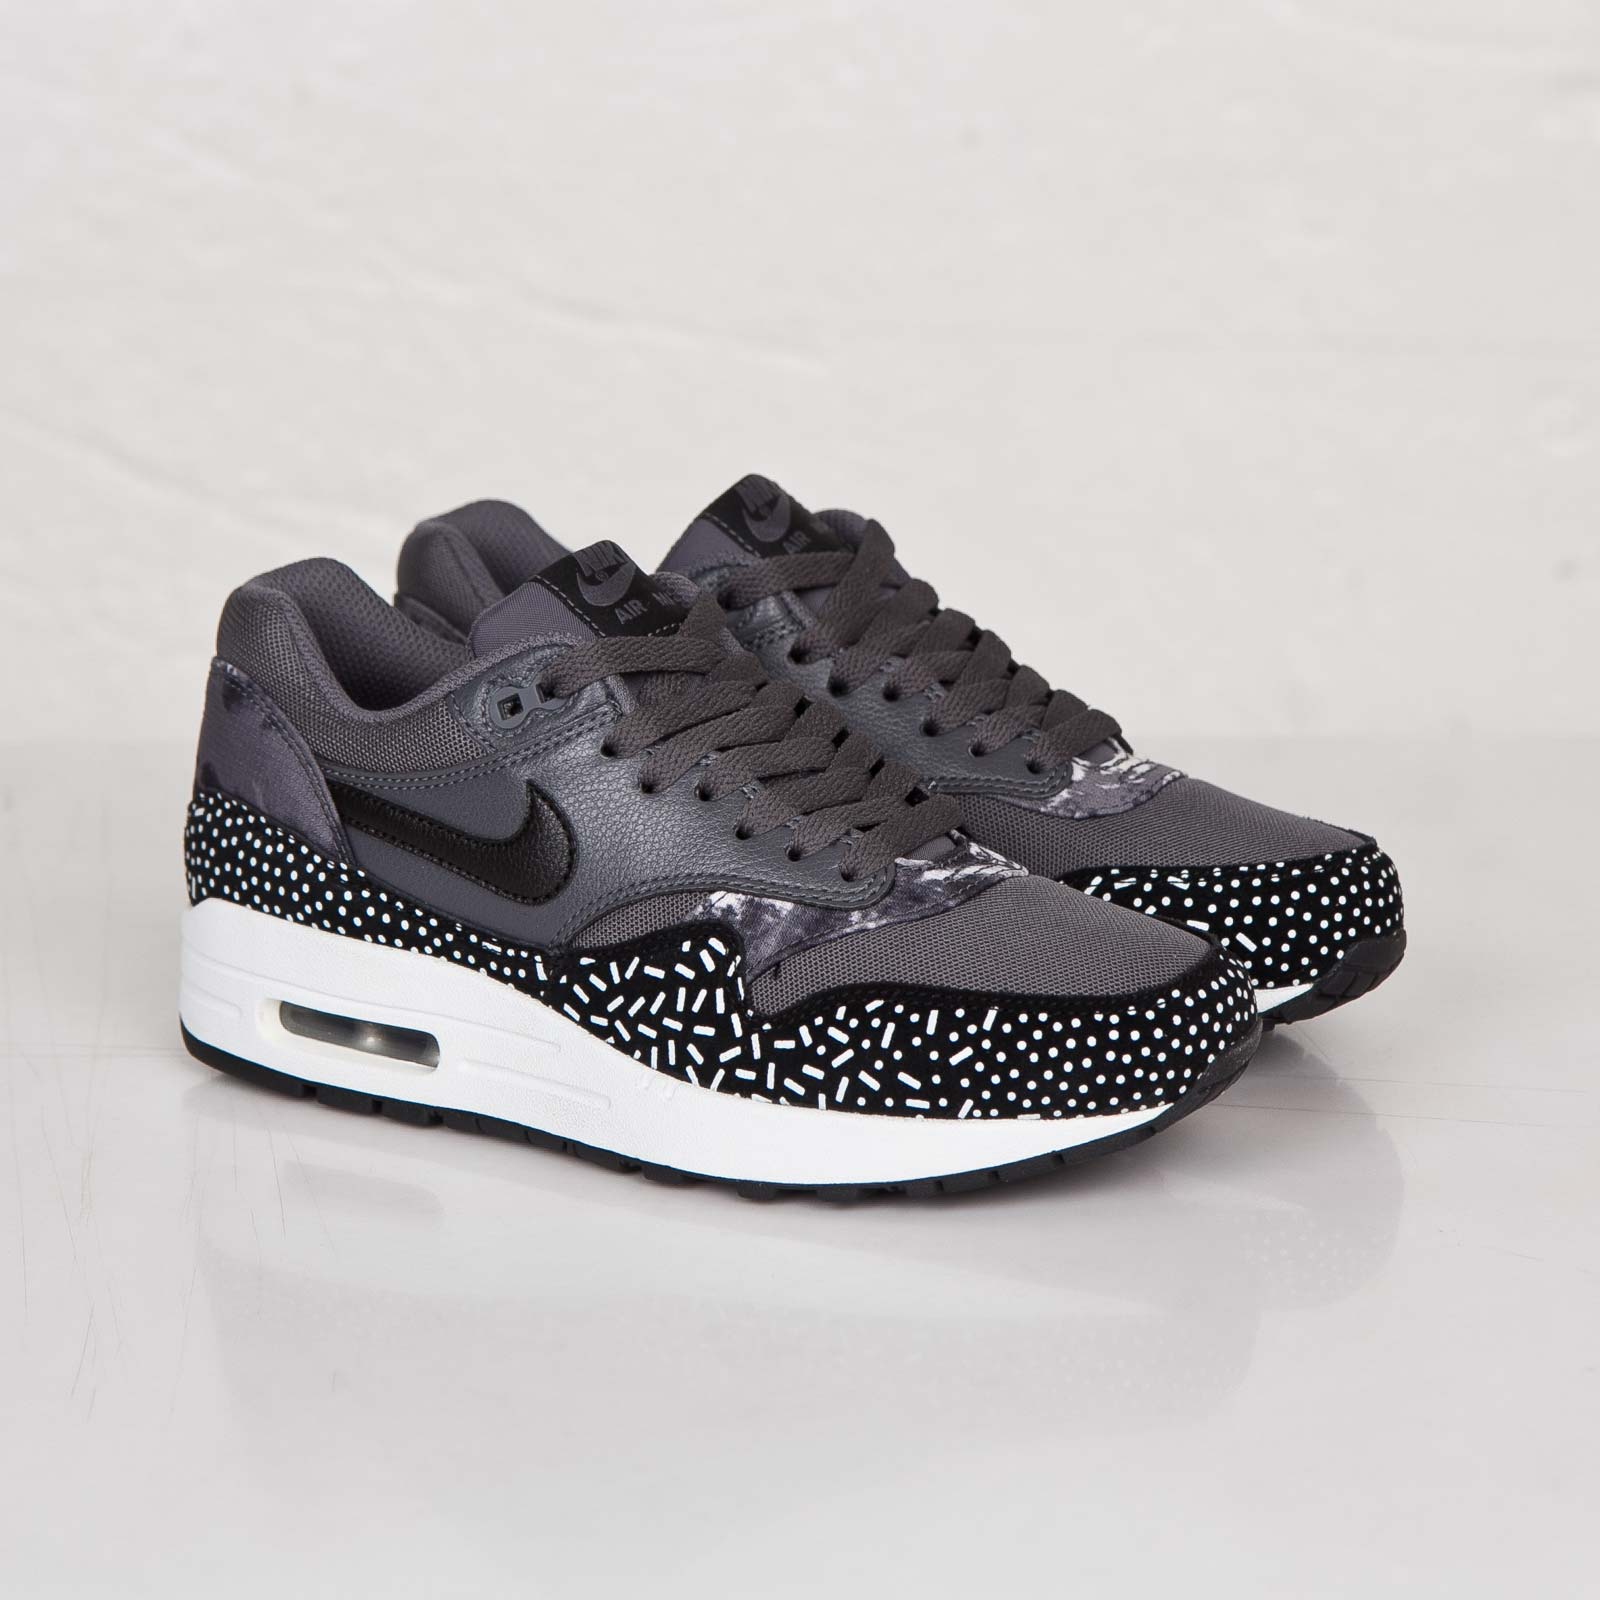 Nike Wmns Air Max 1 Print Dark Grey 528898 001 in 2020